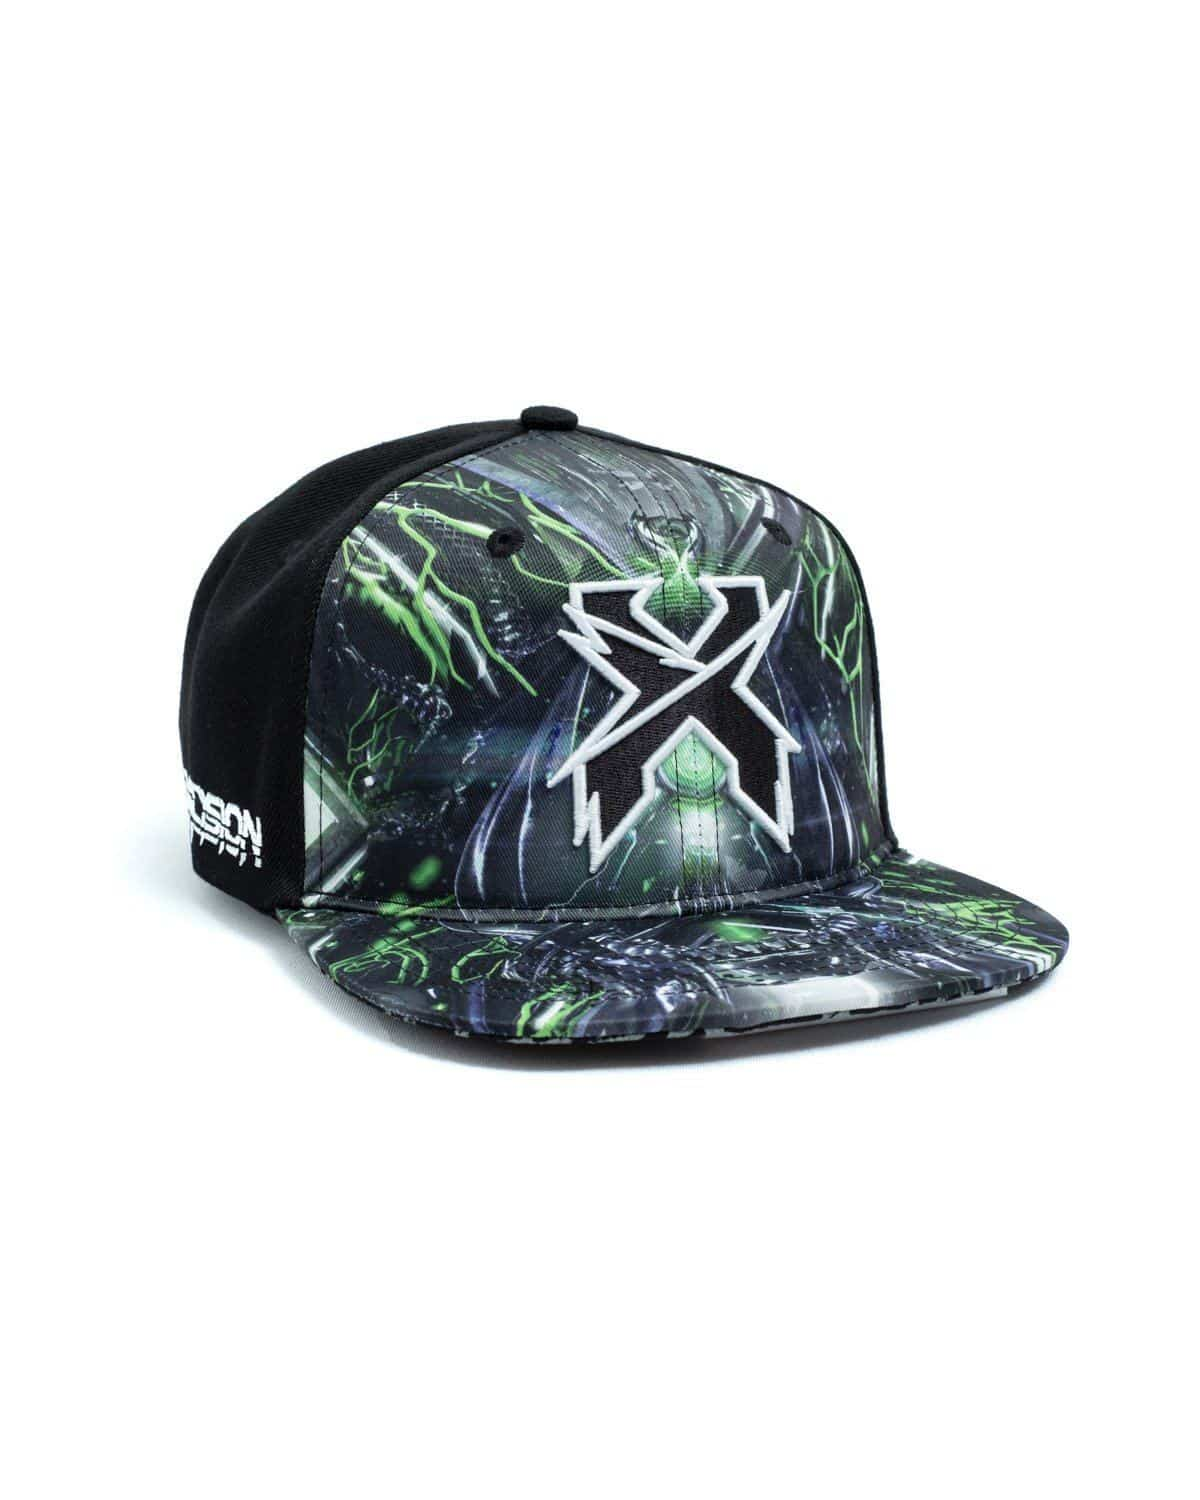 Excision 'Sliced Logo' Paradox Tour 2018 Snapback - Black/Green